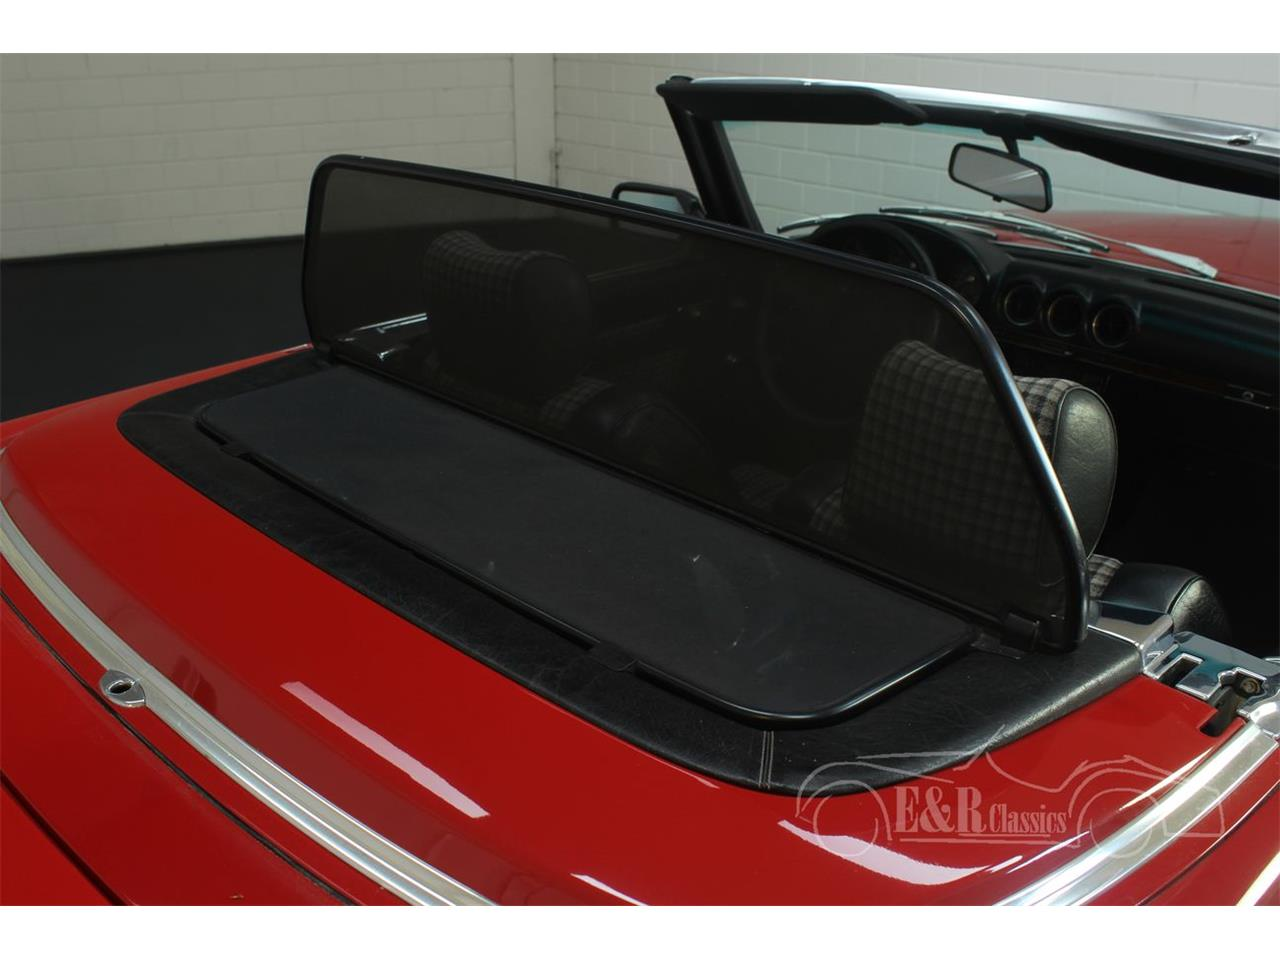 Large Picture of '85 Mercedes-Benz 380SL - $38,550.00 Offered by E & R Classics - R1DJ